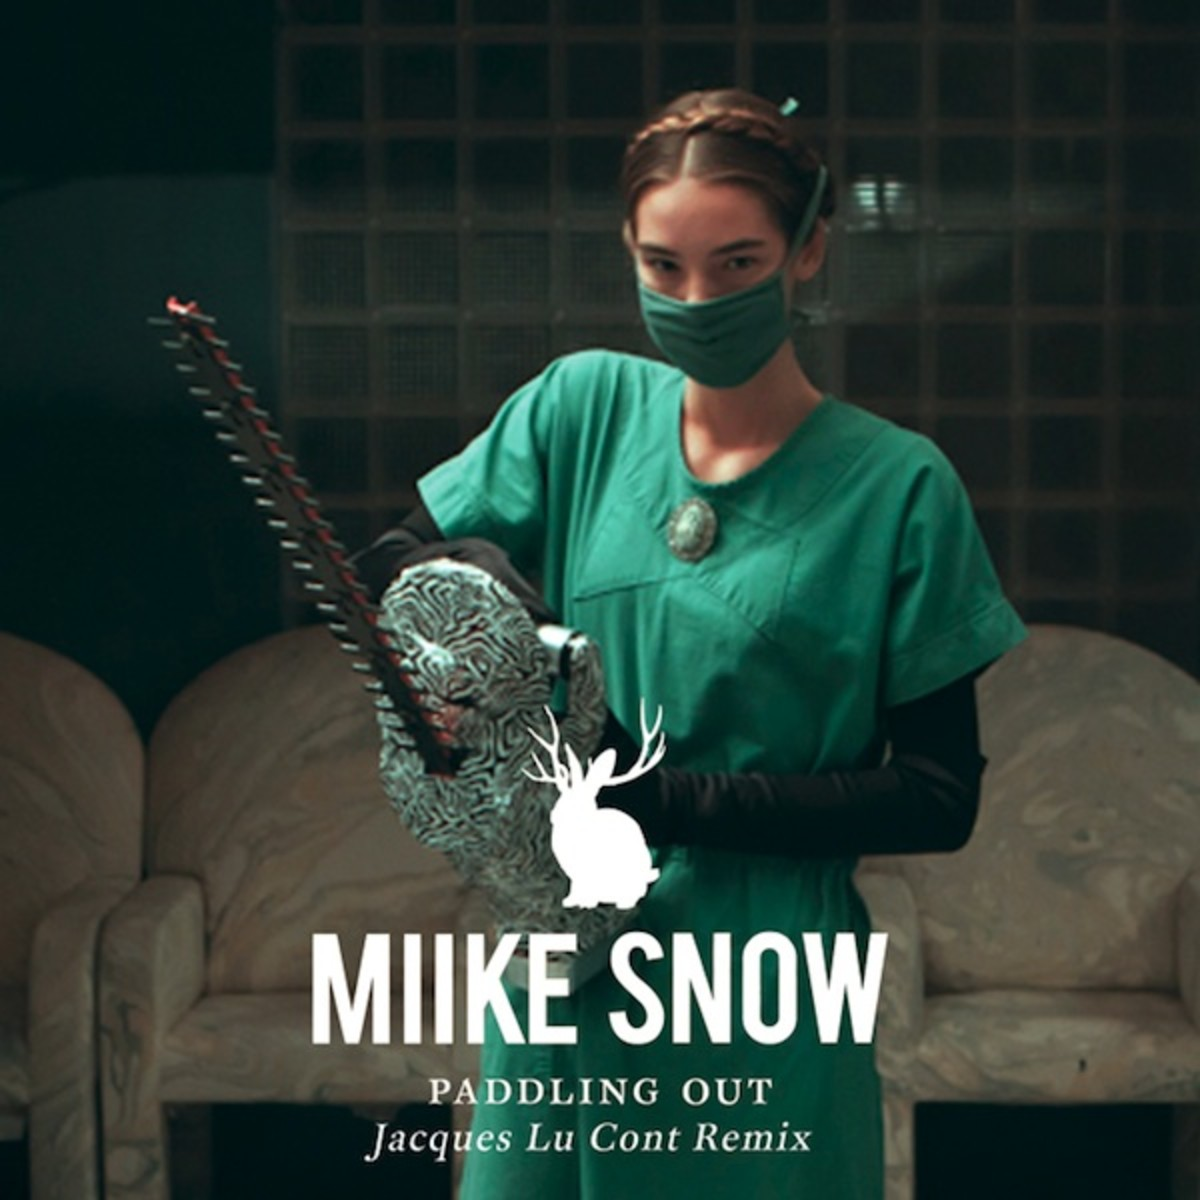 Miike-Snow-Paddling-Out-Jacques-Lu-Cont-Remix